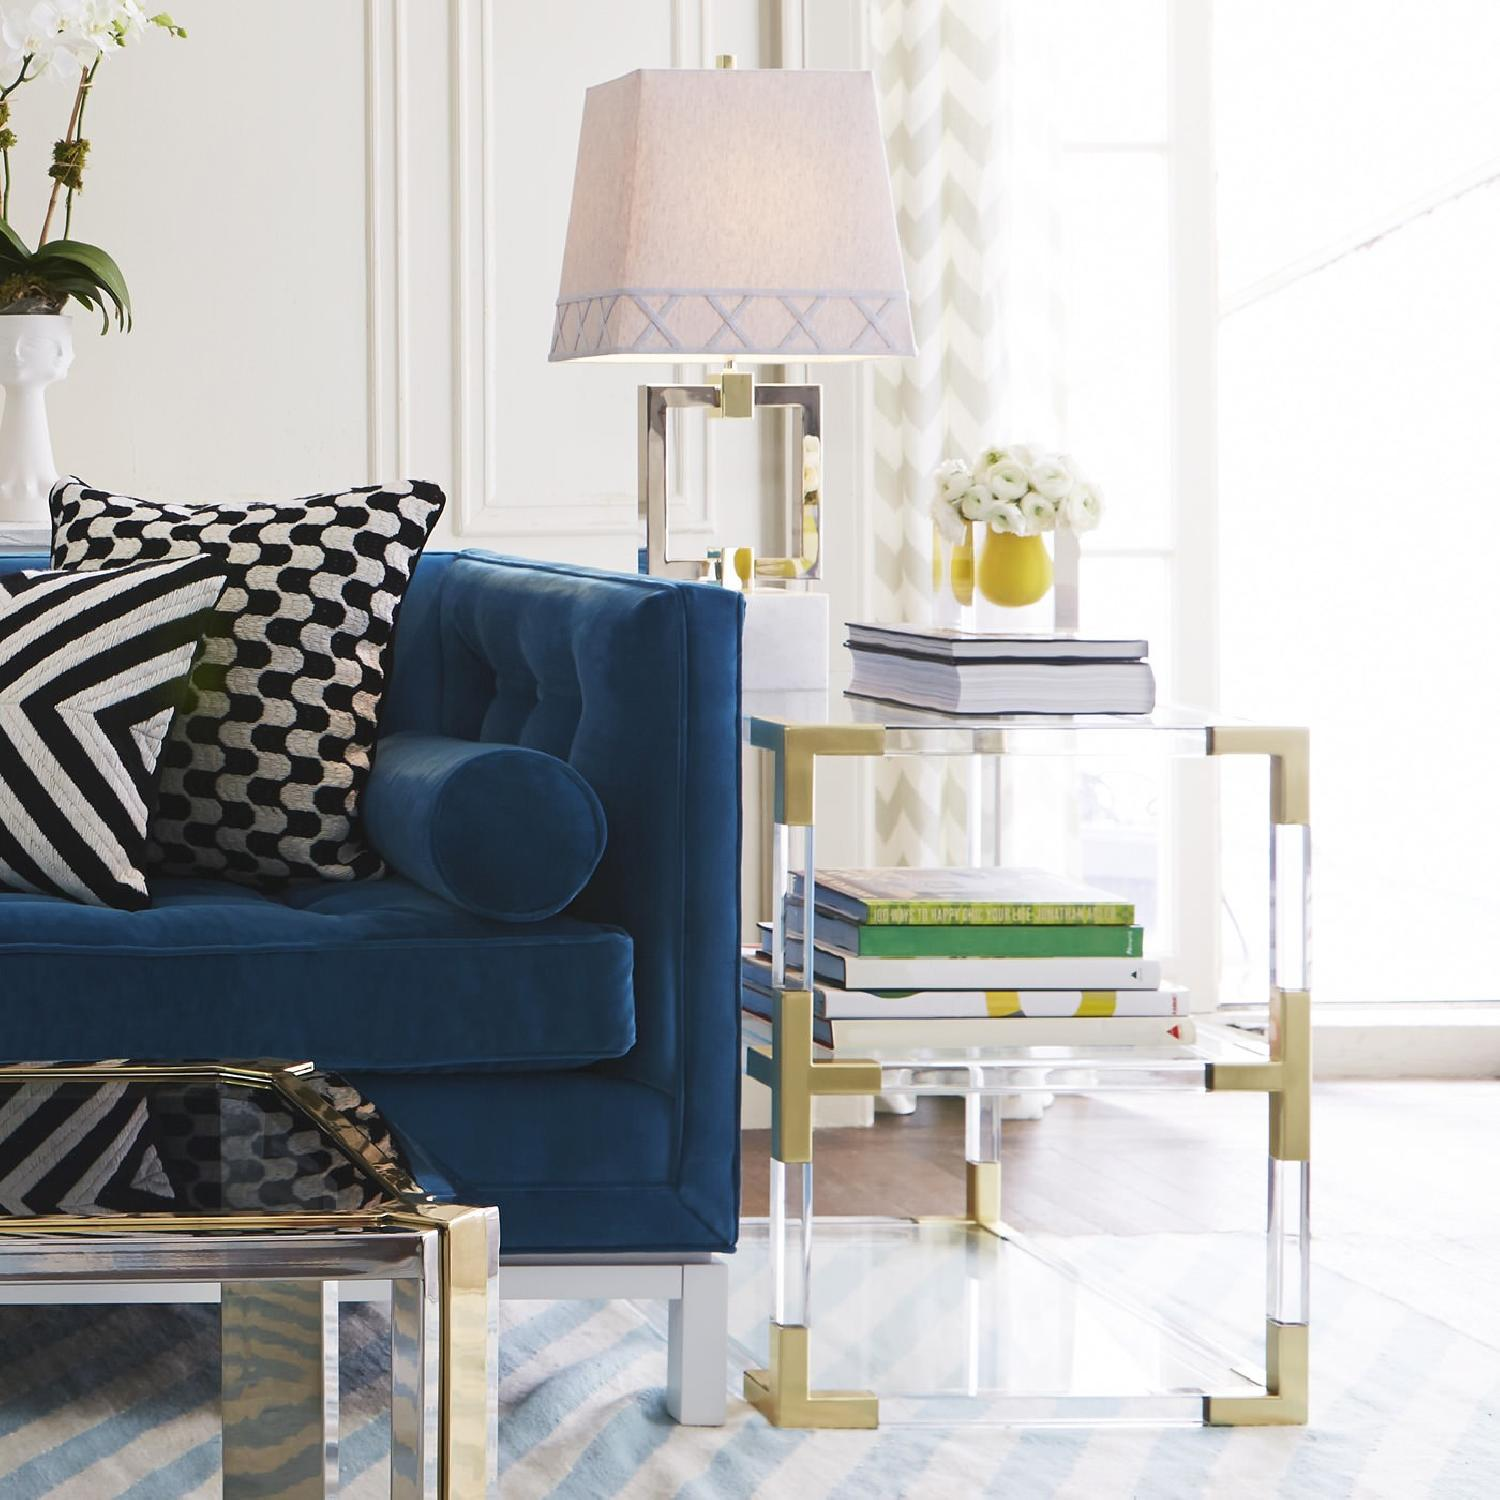 Jonathan Adler Jacques Two-Tier Side Tables - image-3